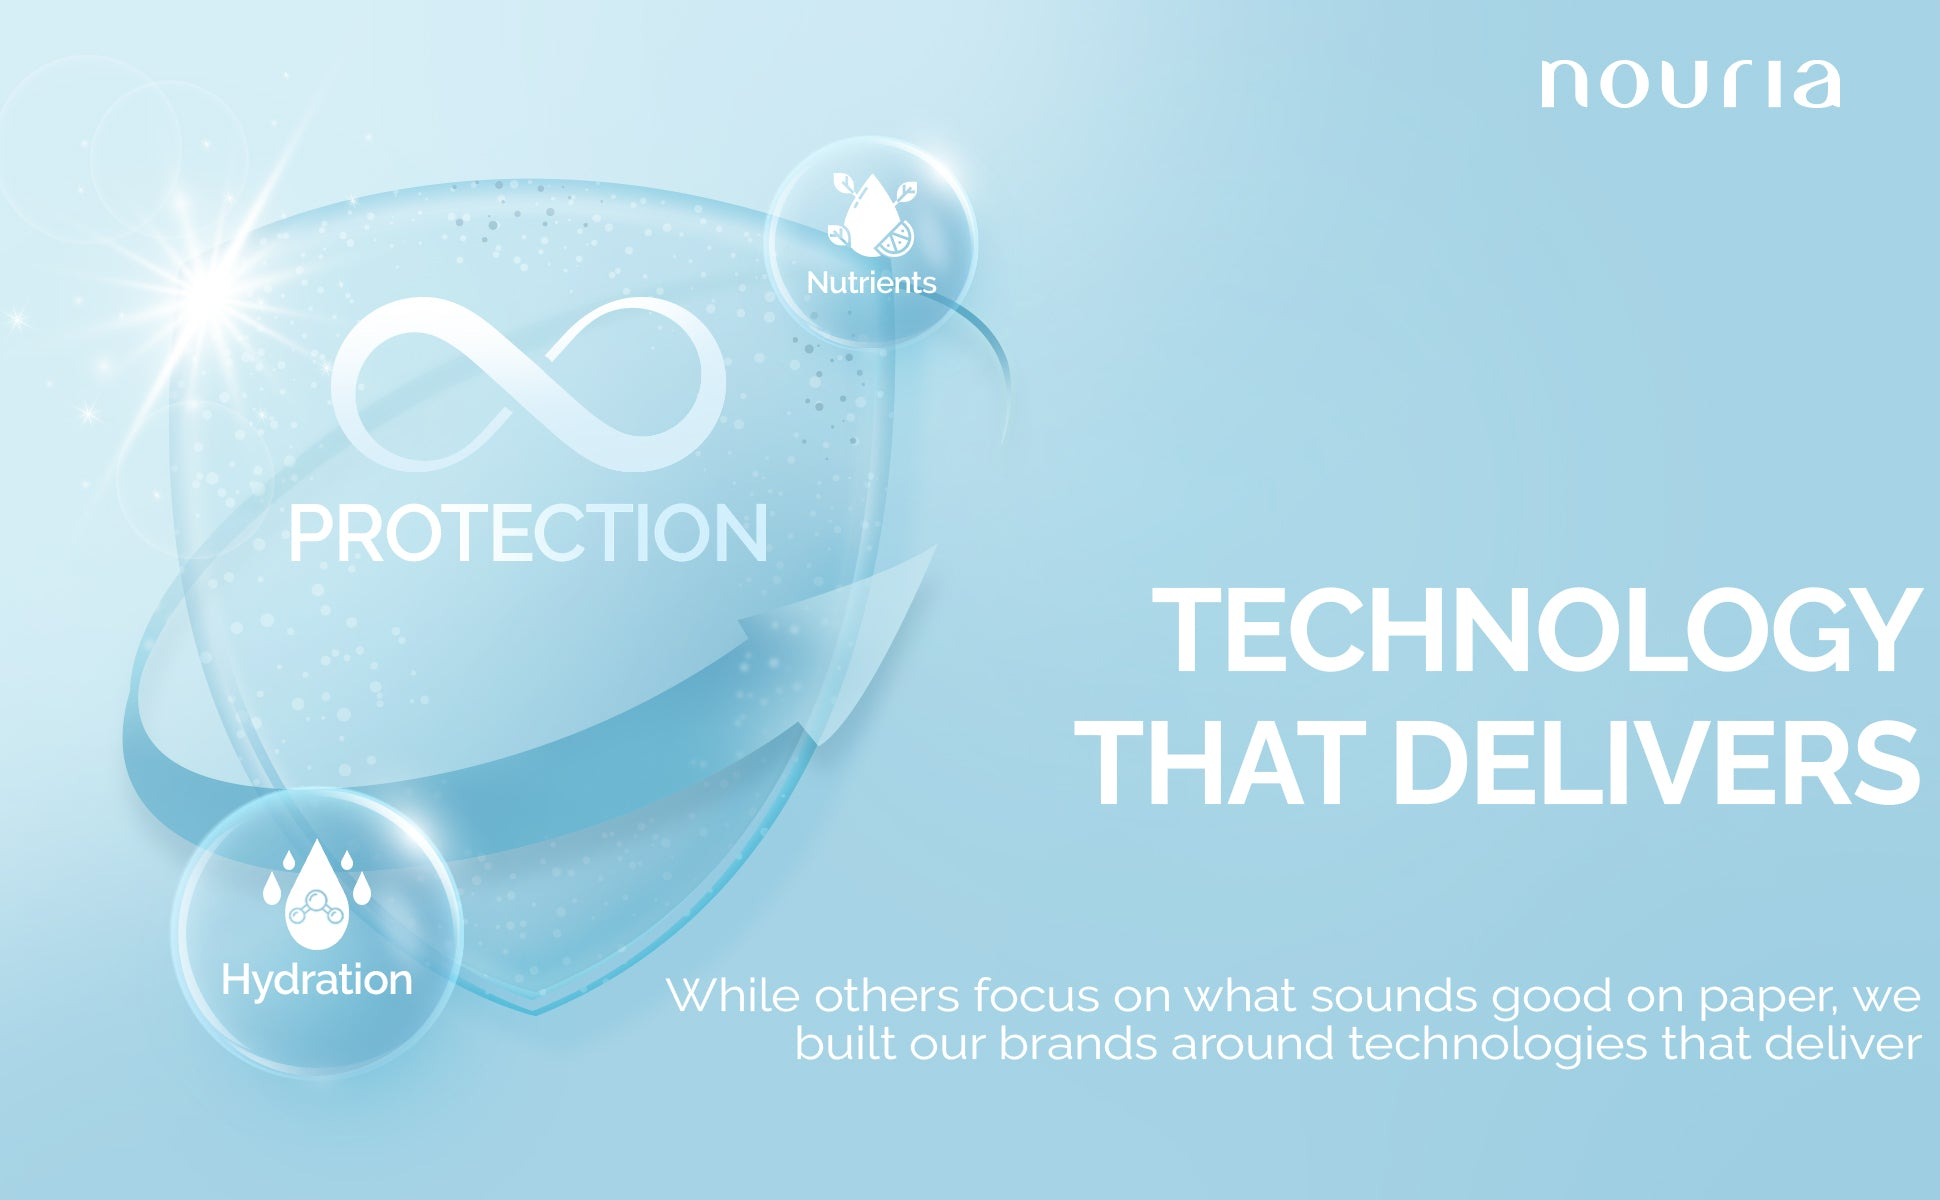 technology that delivers.